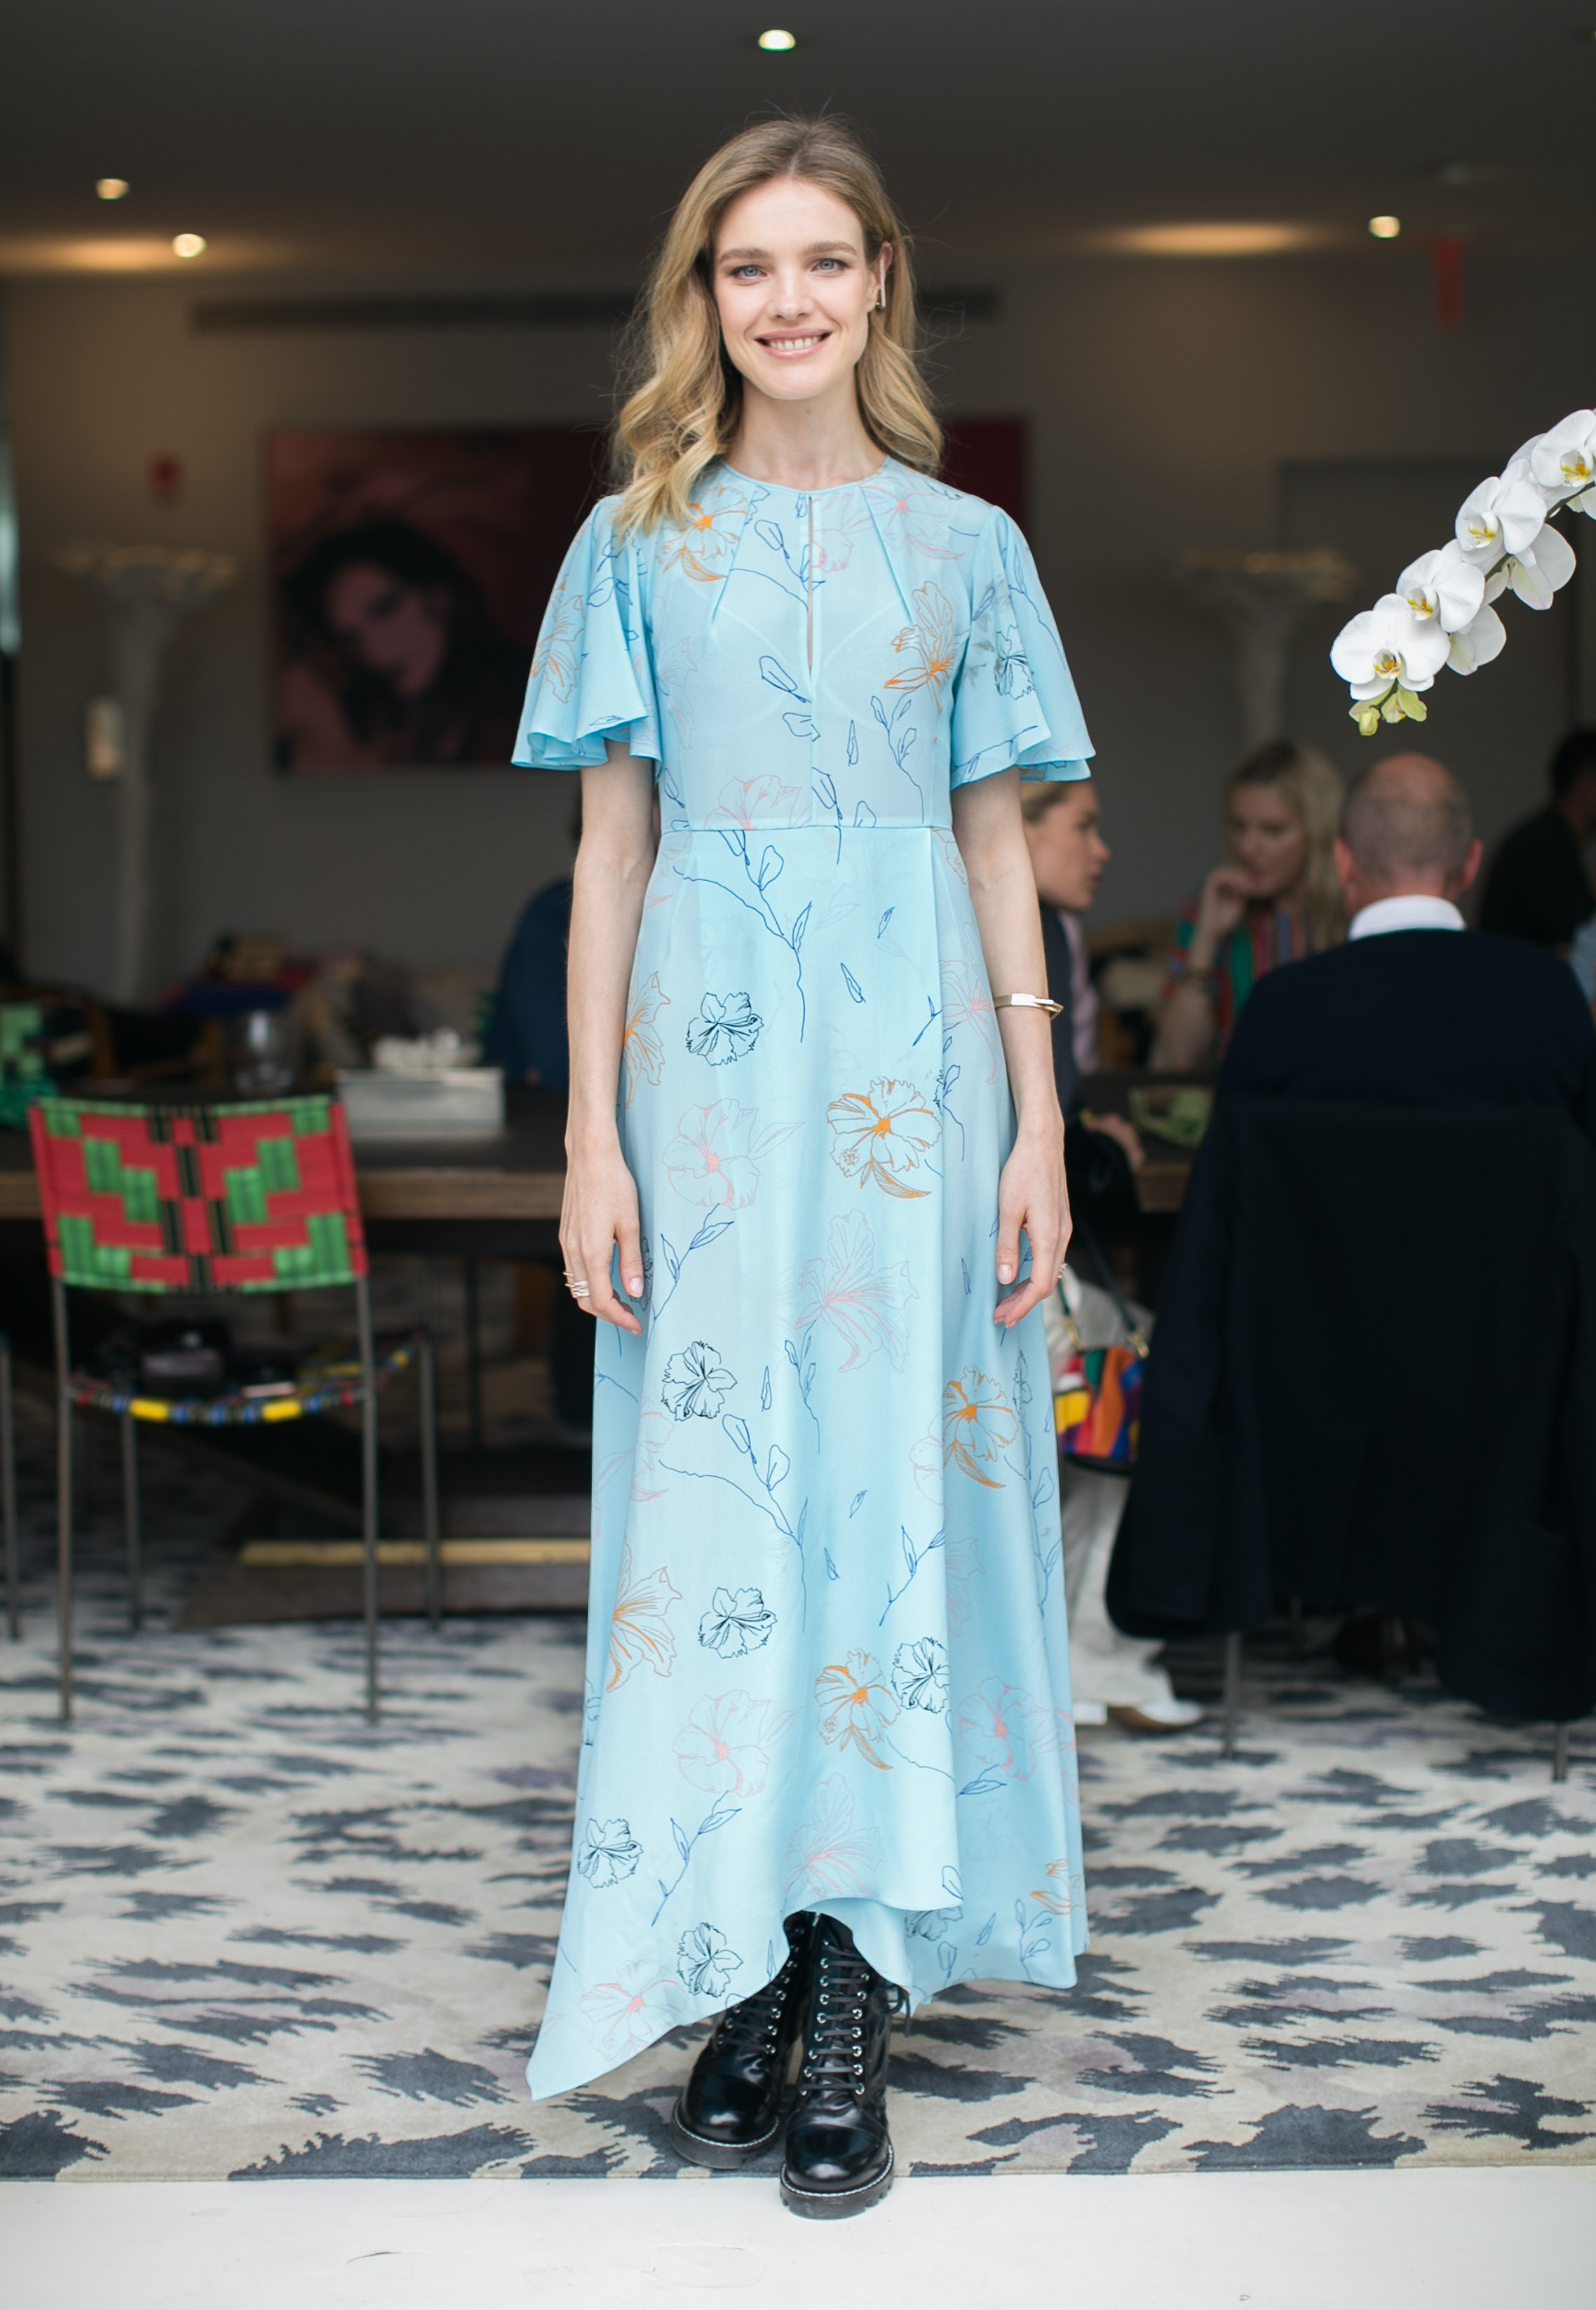 Natalia Vodianova at a brunch hosted by Diane von Furstenberg | Source: Sam Deitch for BFA